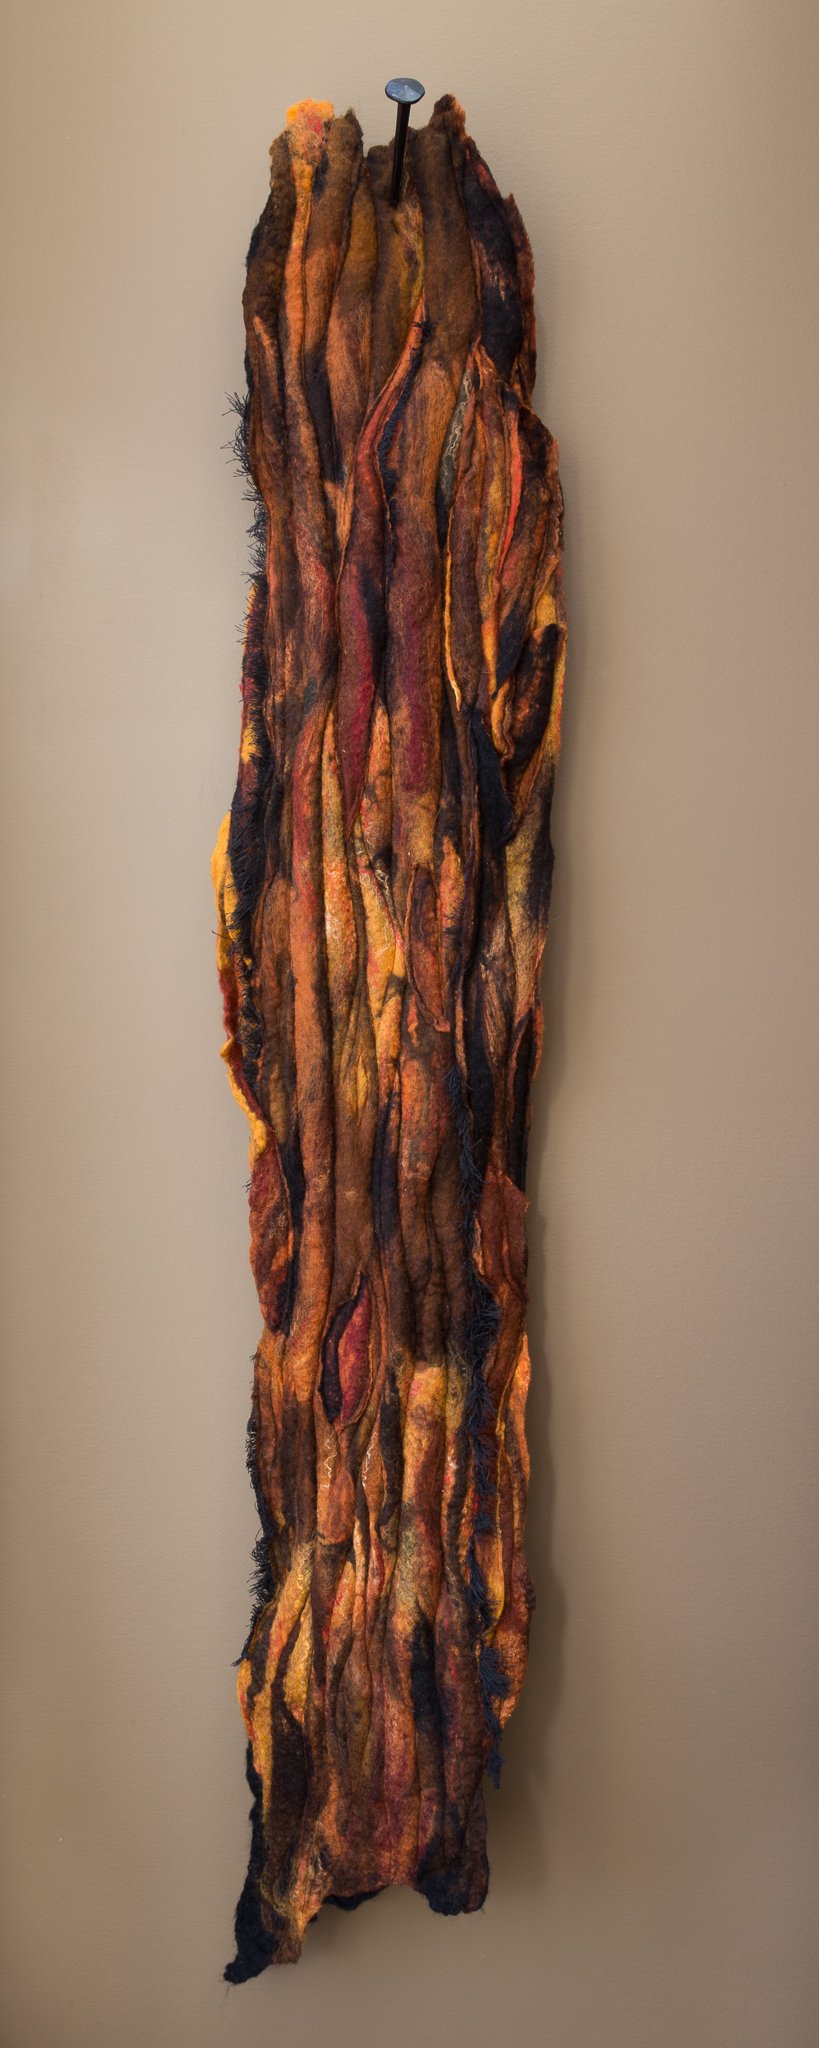 burnt   handmade felt, mixed media  52 x 10 x 5